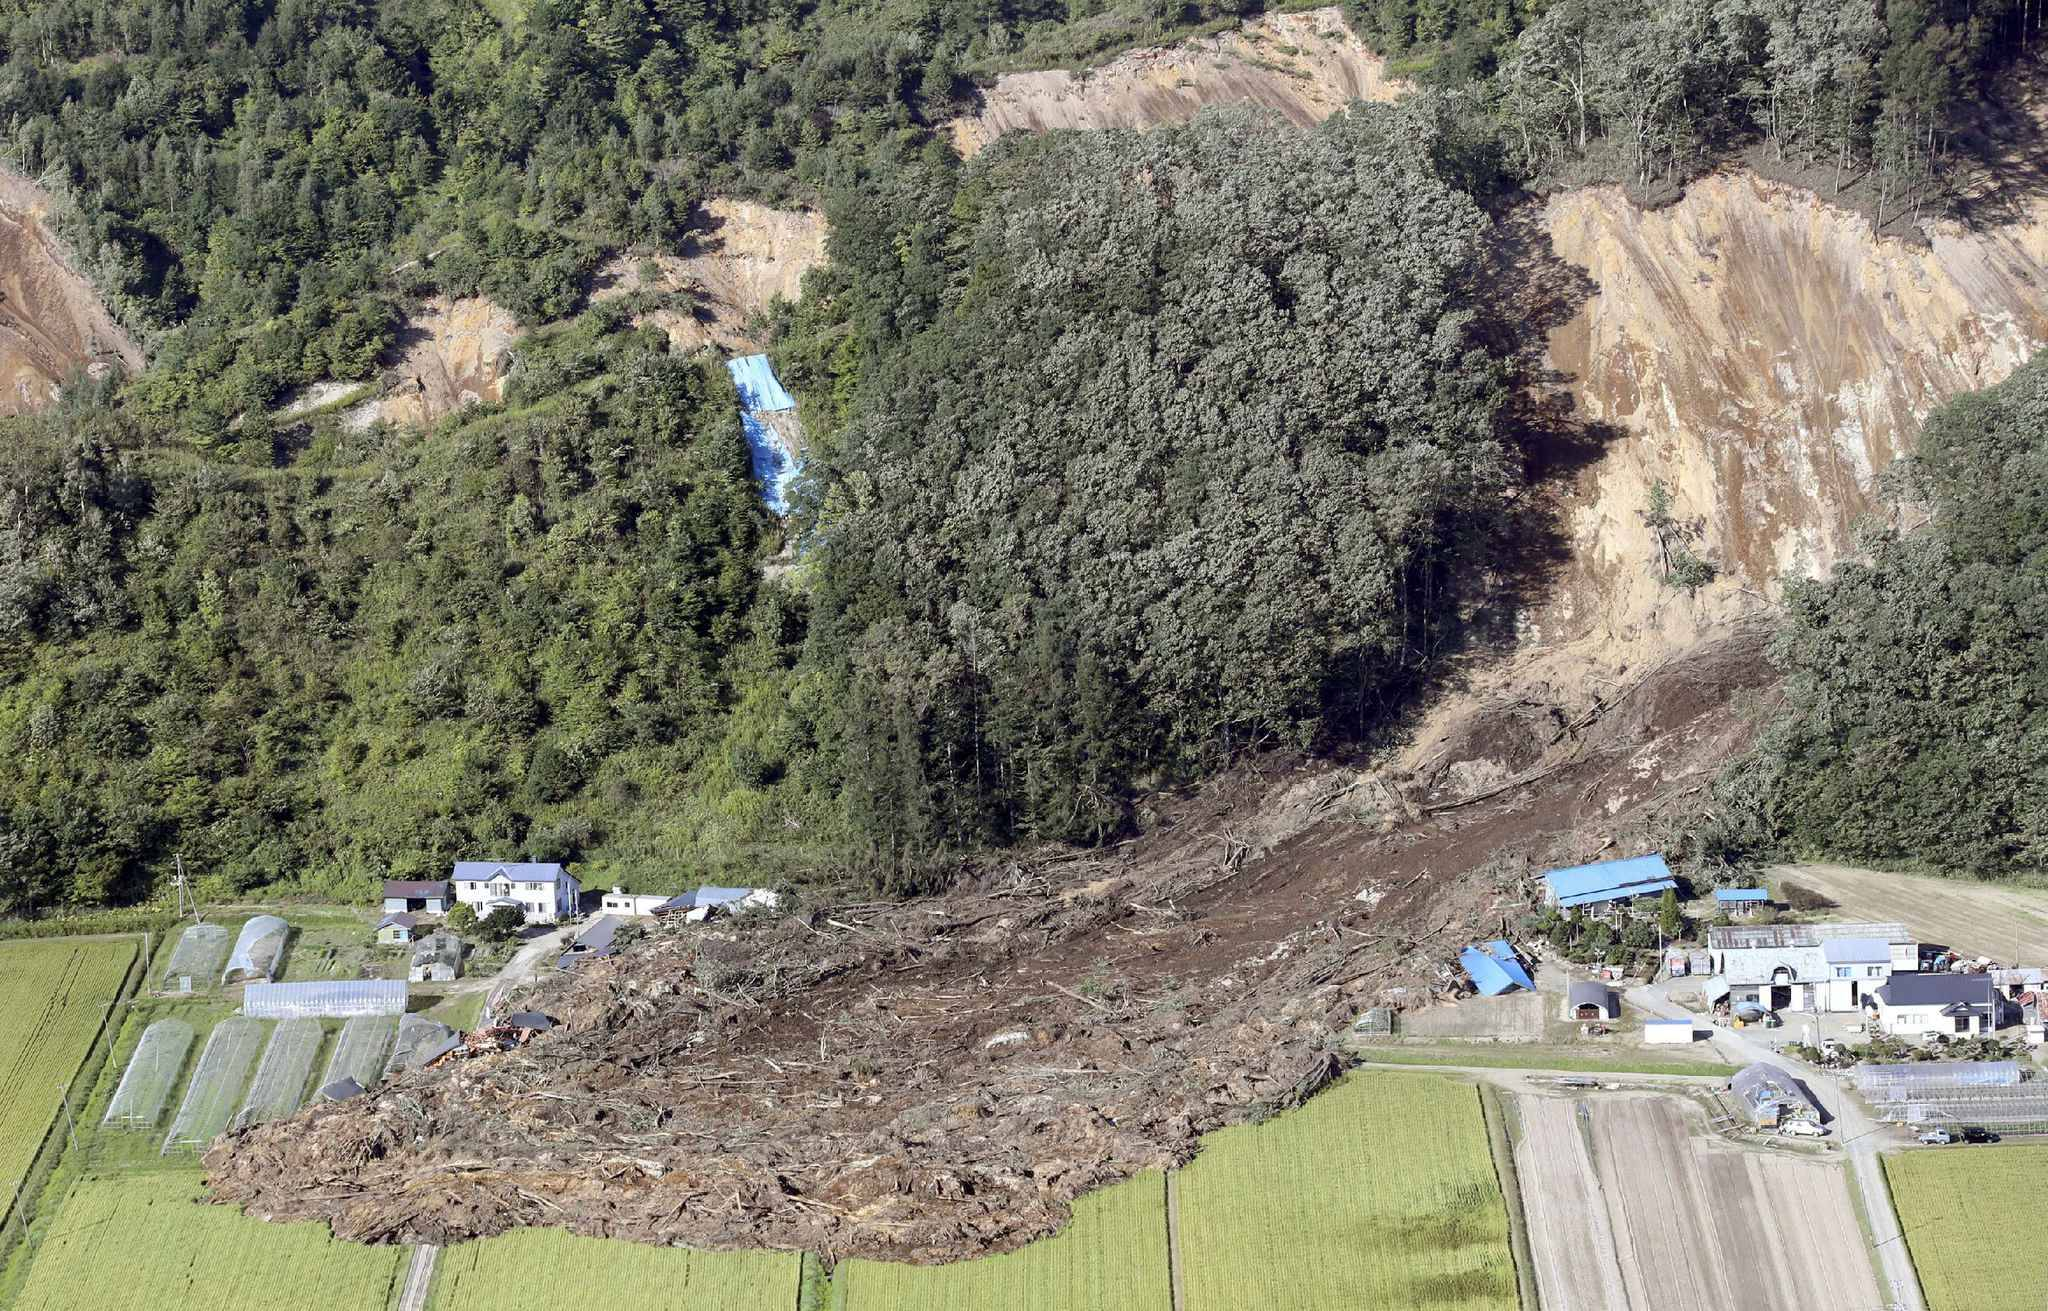 An aerial photo shows houses covered with landslide in Atsuma Town, Hokkaido on Sep.6, 2018. Severe earthquake registering 7 on the Japanese seismic scale in Atsuma Town, Iburi district of Hokkaido occurred at a.m. 3 on September 6th. According to the Meteorological Agency, the depth of the epicenter was estimated to be about 37 kilometers, and the indicative magnitude was estimated to be 6.7.